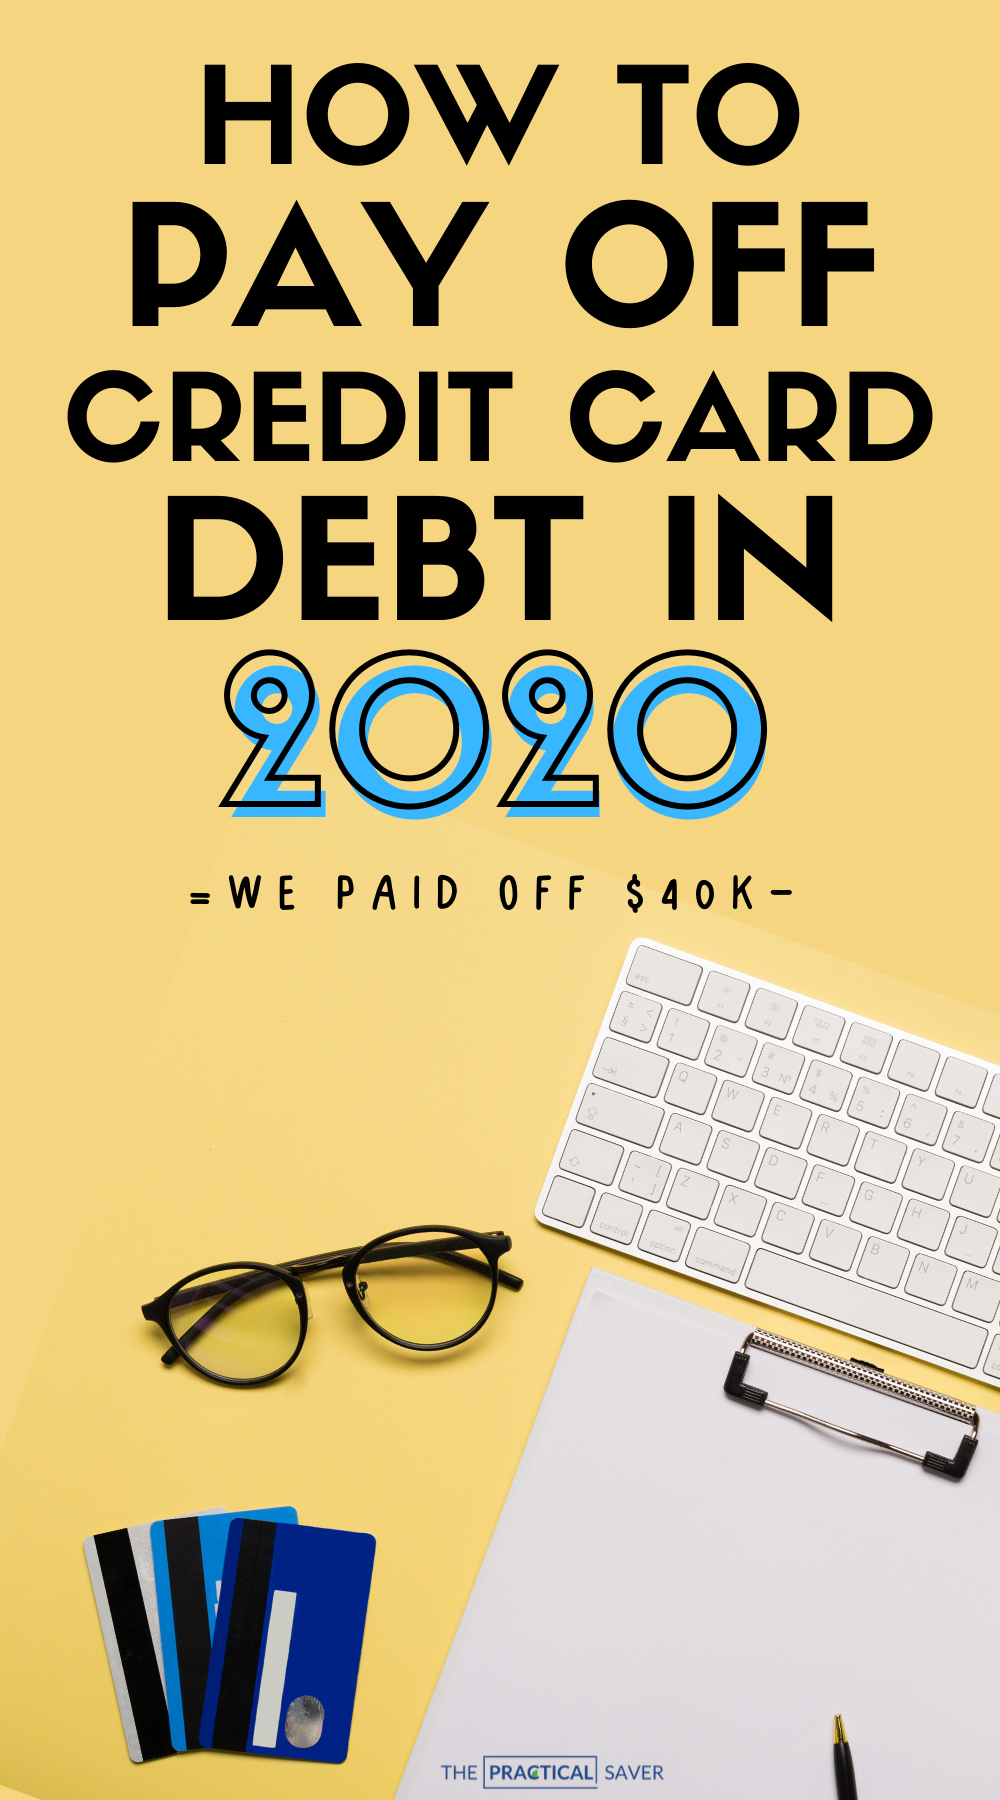 How To Pay Off Credit Card Debt: 13 Proven Tips That Work ...